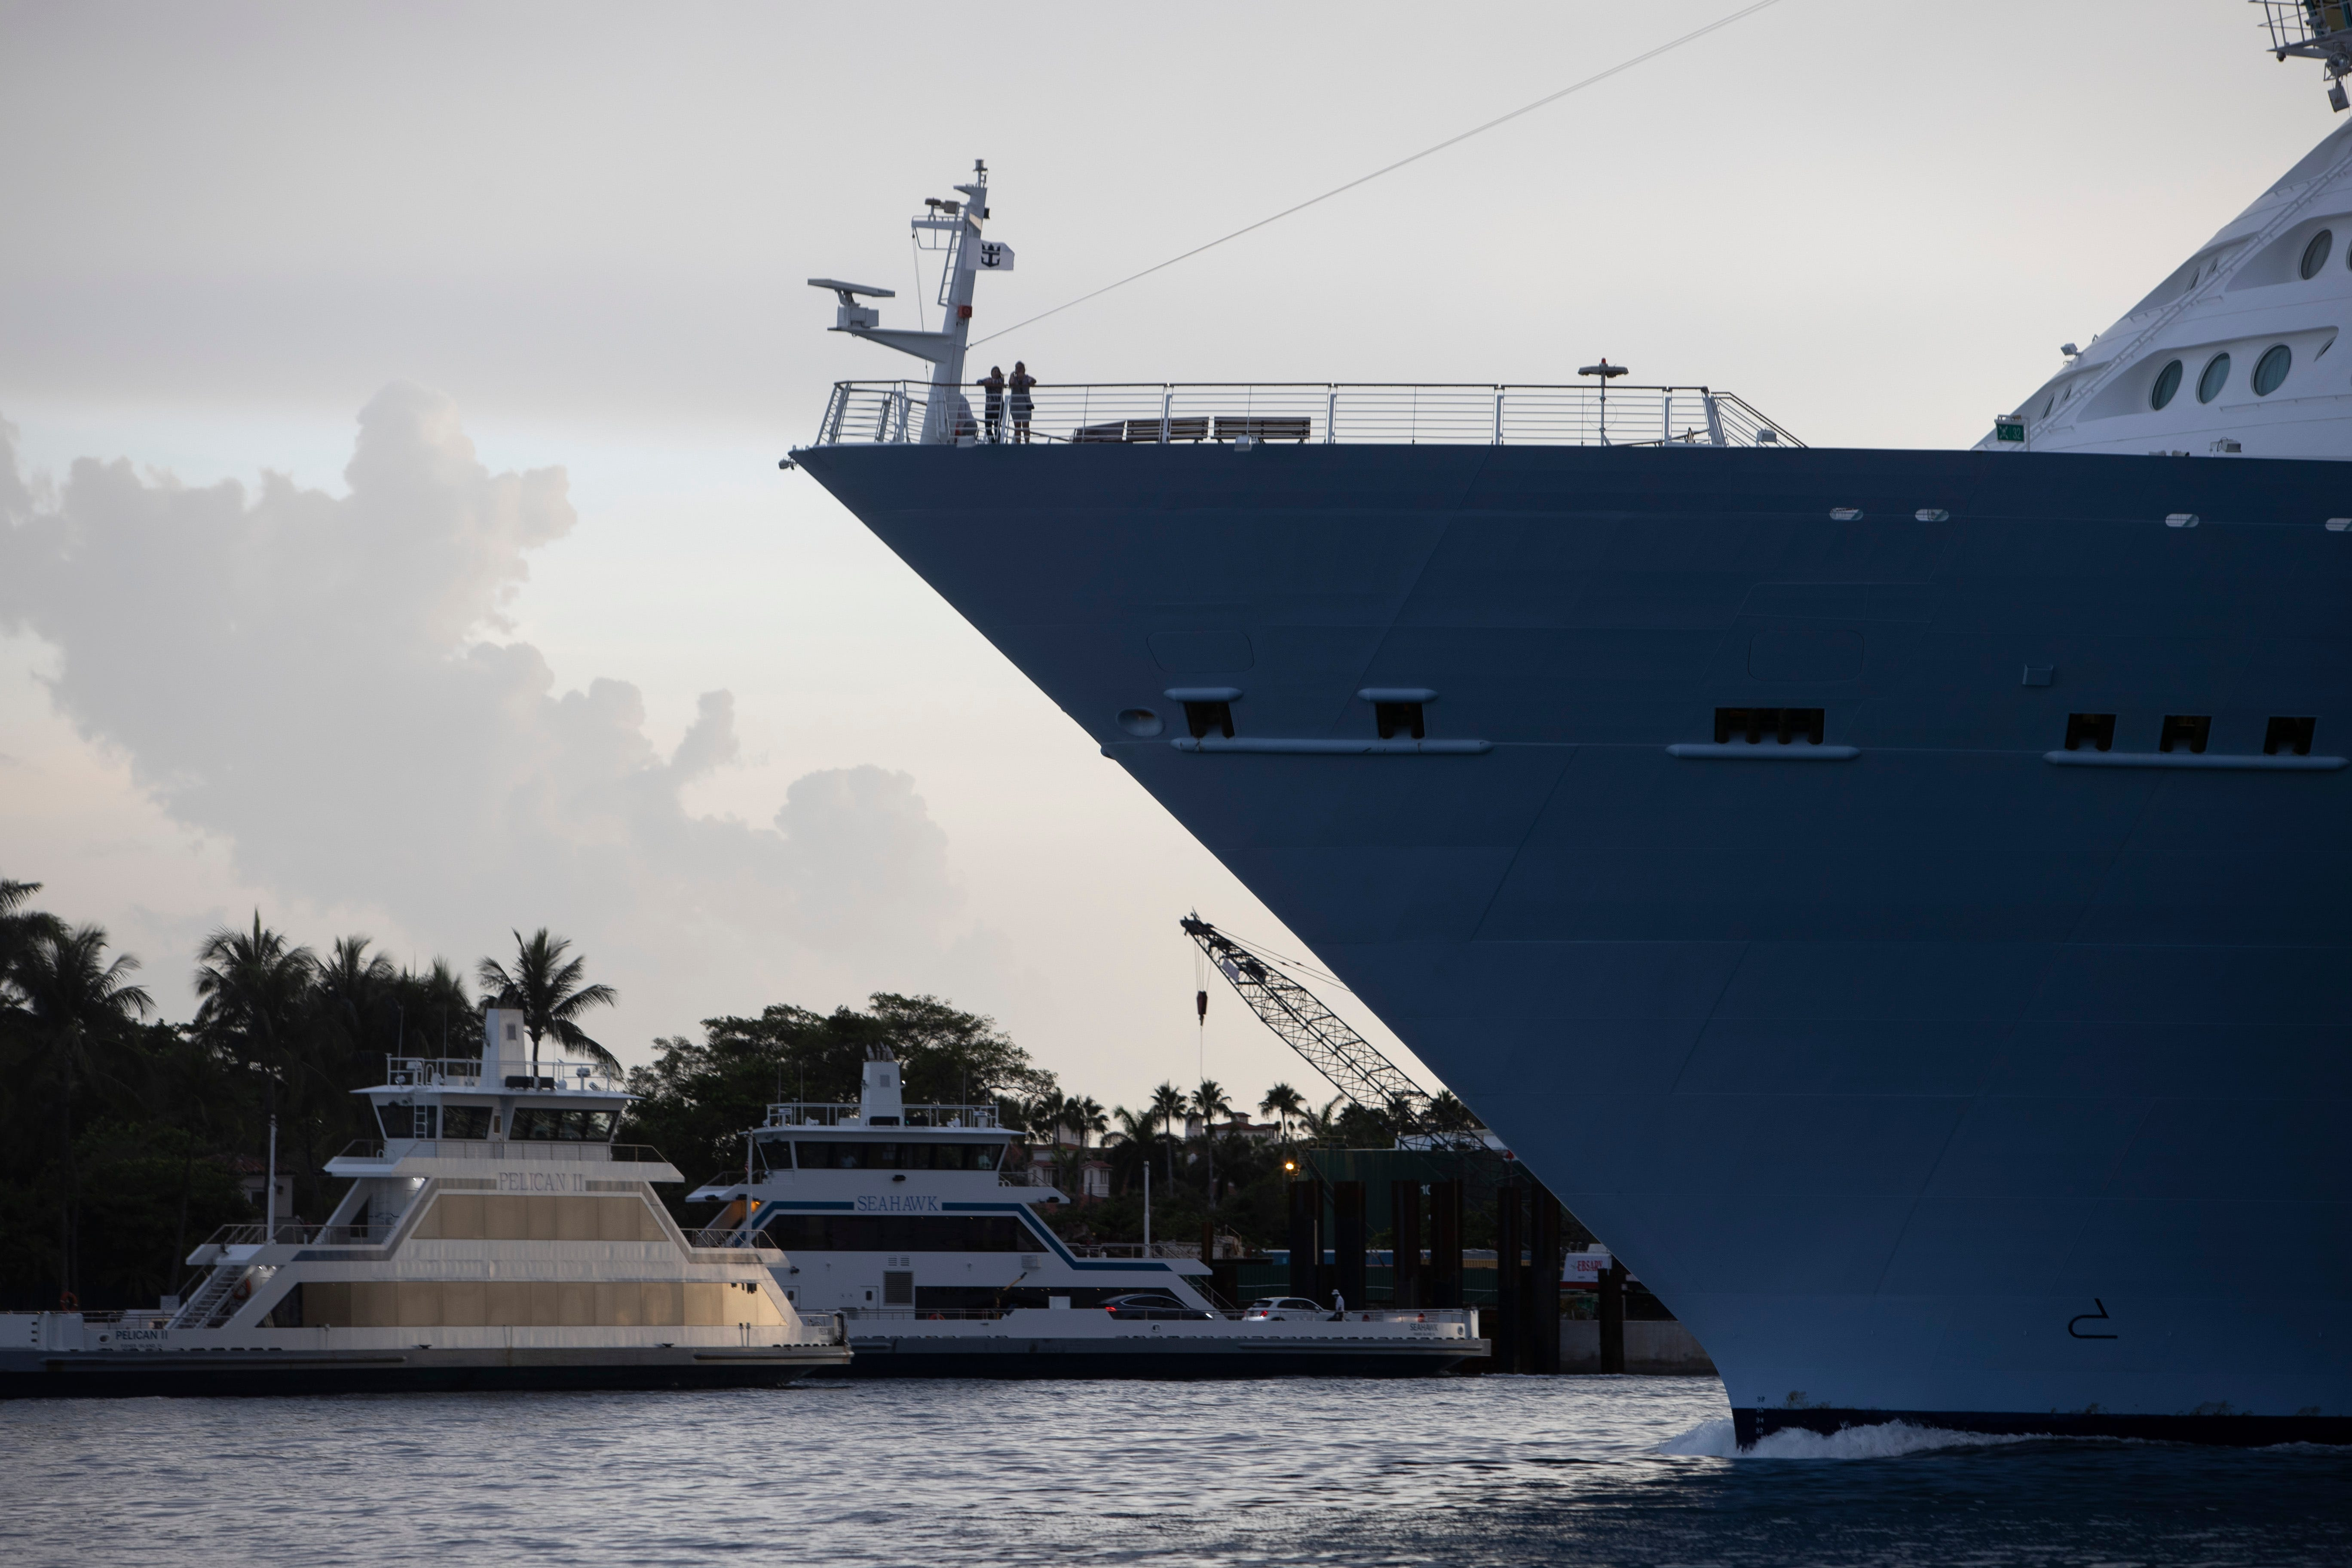 Taking a cruise from Florida? Appeals court blocks order lifting CDC COVID-19 rules on ships